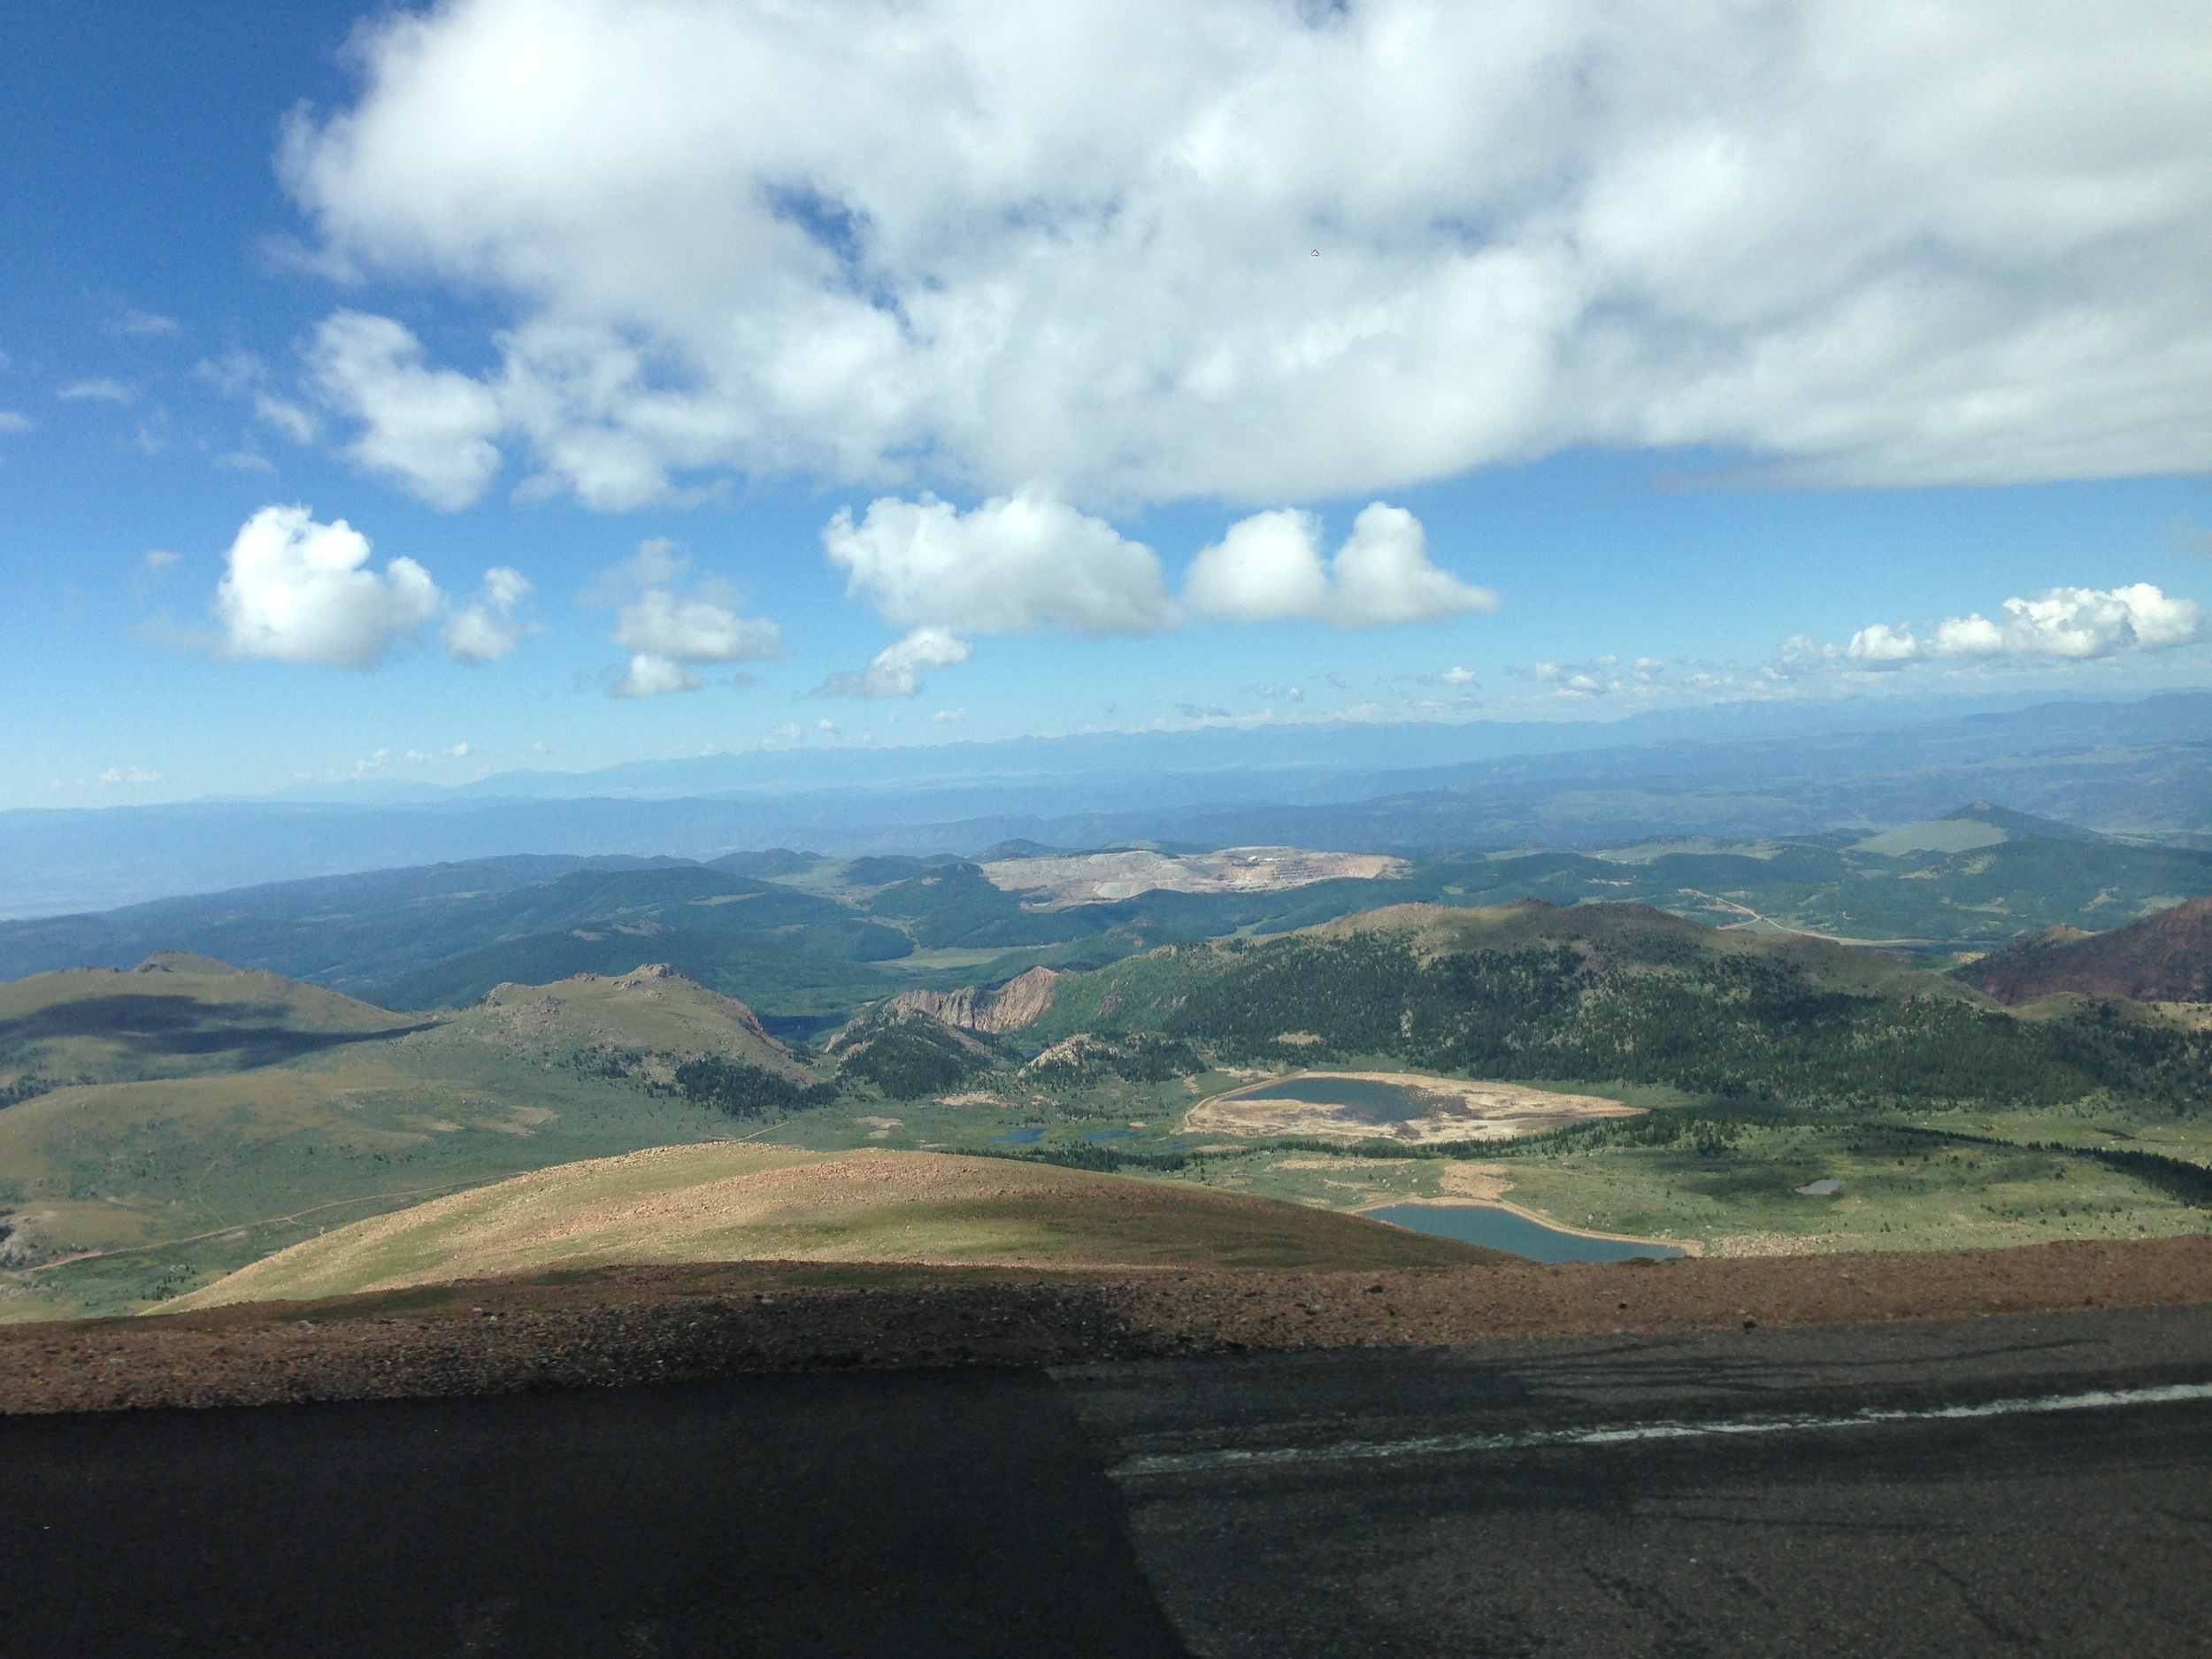 Shuttling to the top of Pikes Peak